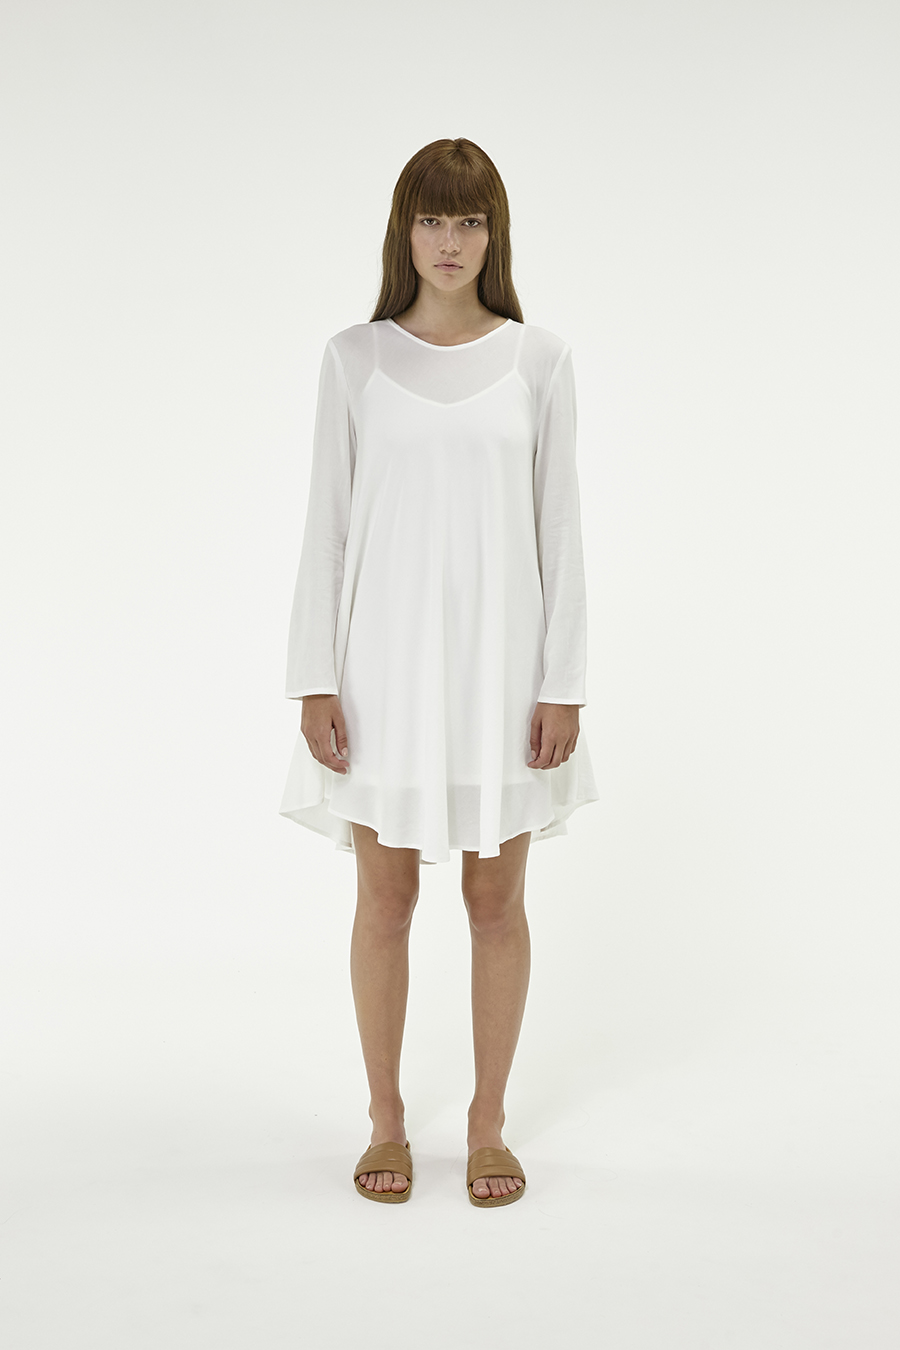 Huffer_Q3-16_W-LS-Minne-Dress_White-01